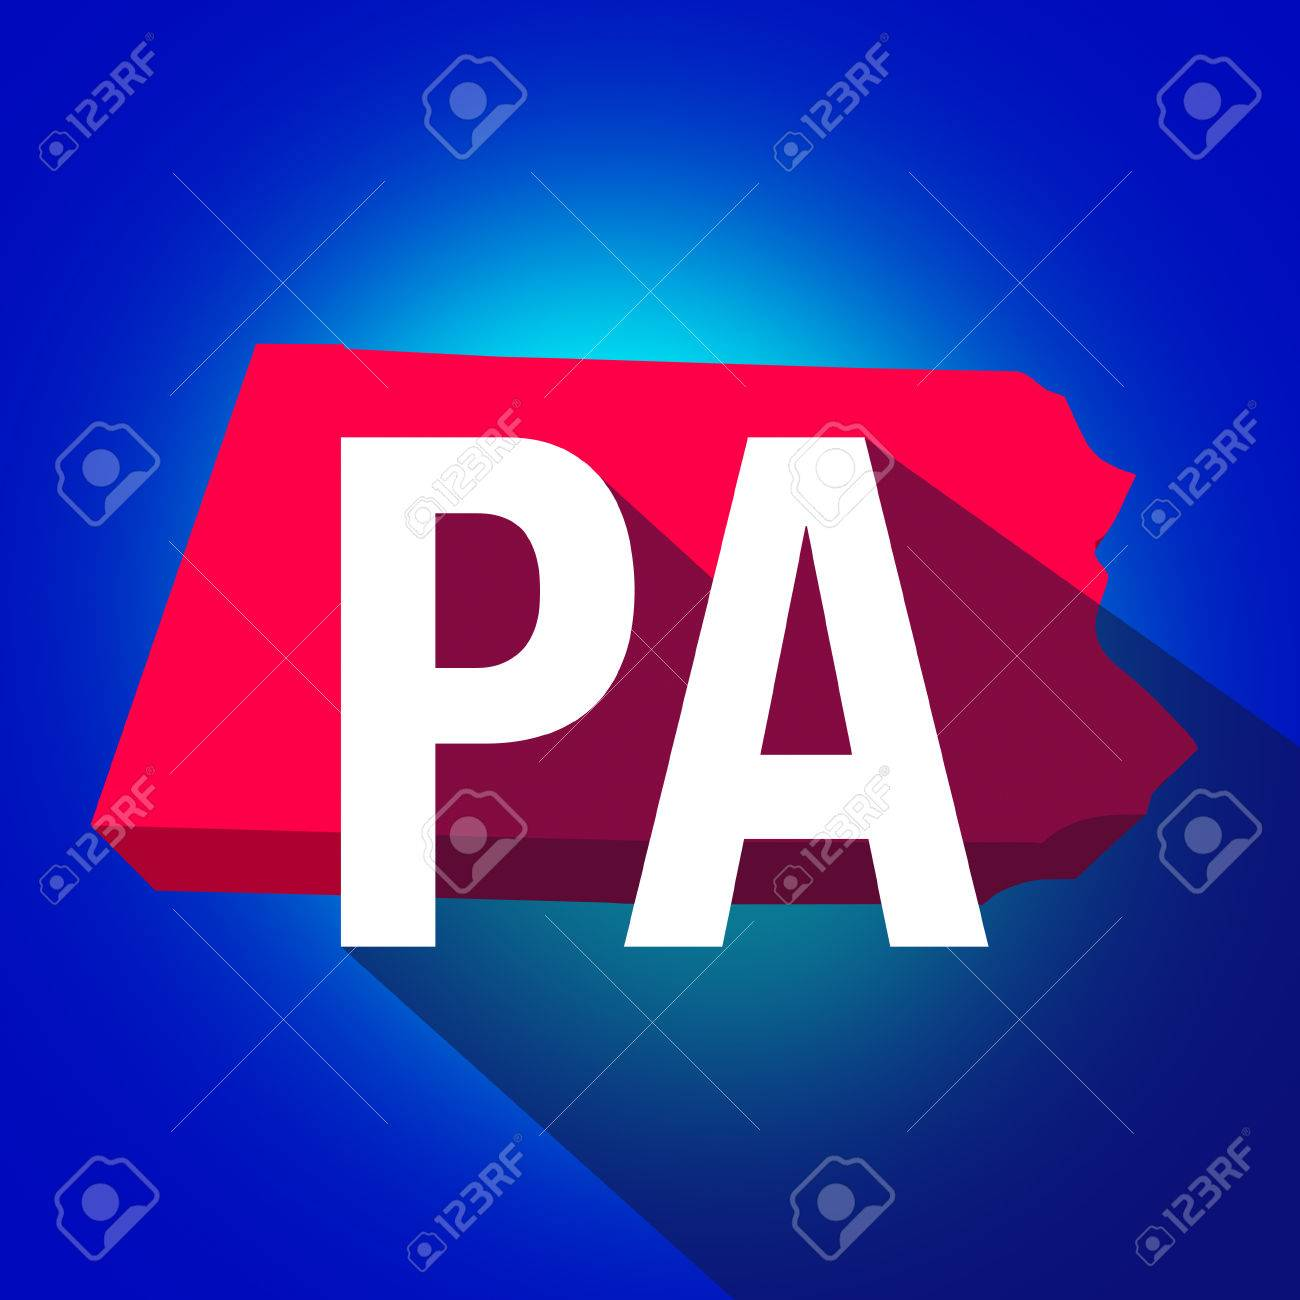 Pennsylvania Pa Letters On A 3d Map Of The State As Part Of The Usa United